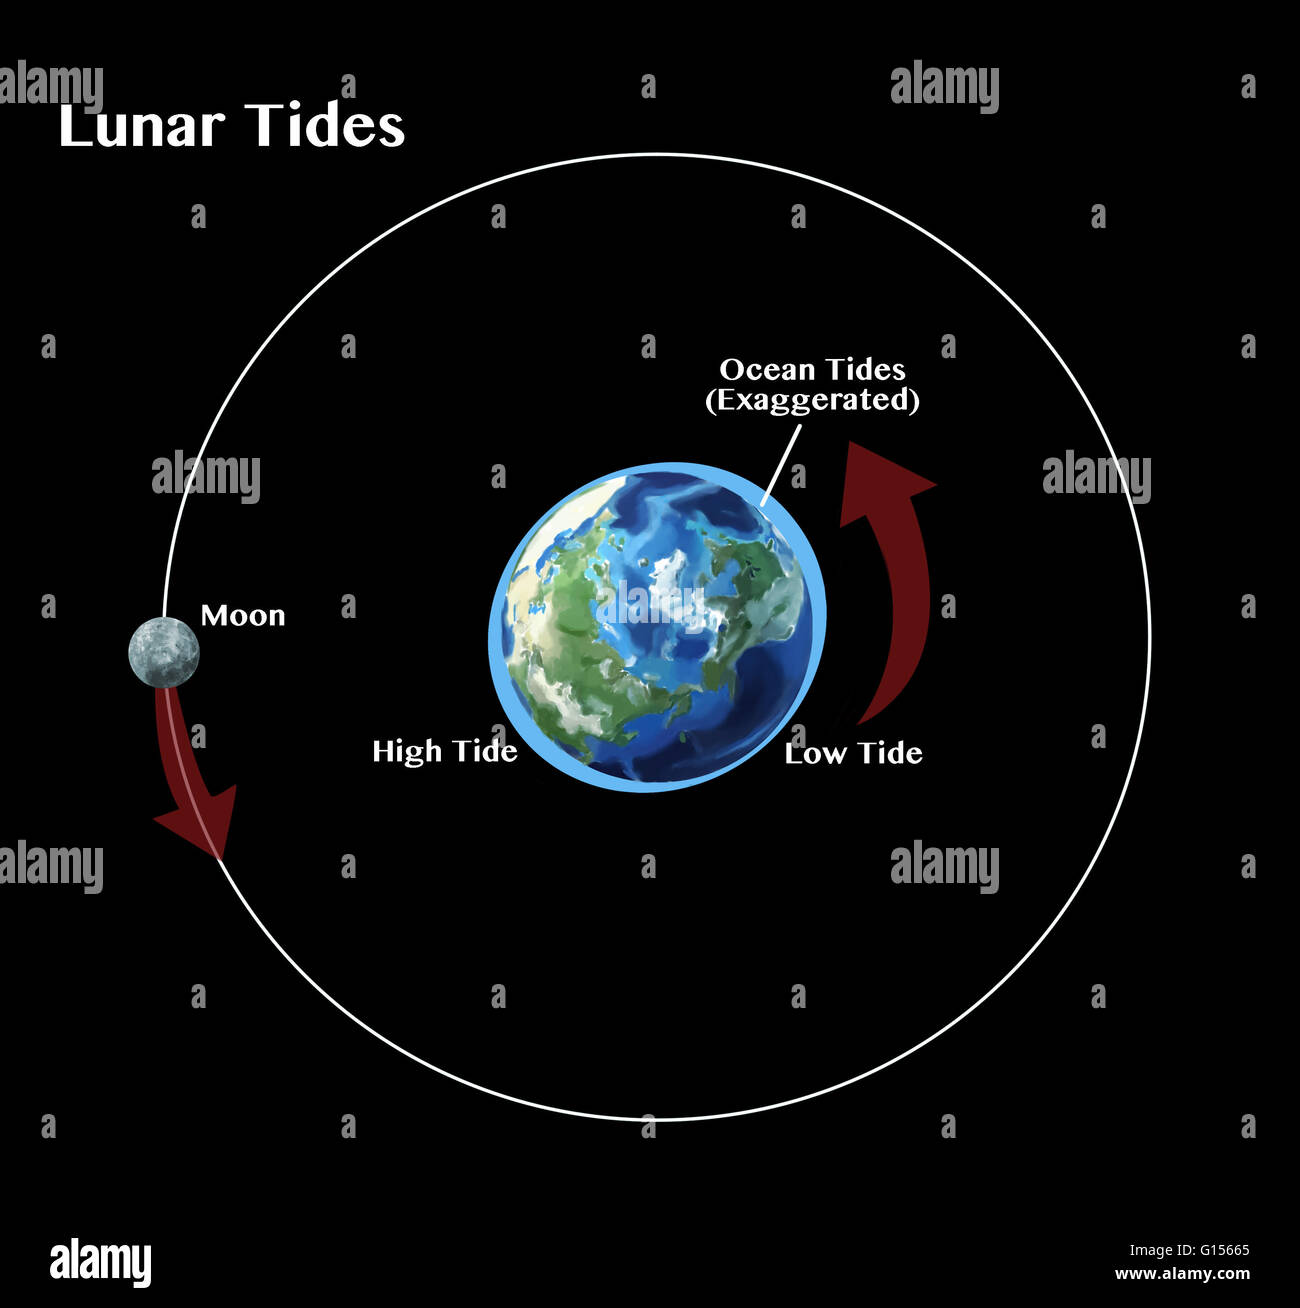 Tides the rise and fall of sea levels are caused by the stock tides the rise and fall of sea levels are caused by the gravitational forces exerted by the moon and the sun and the rotation of the earth pooptronica Gallery